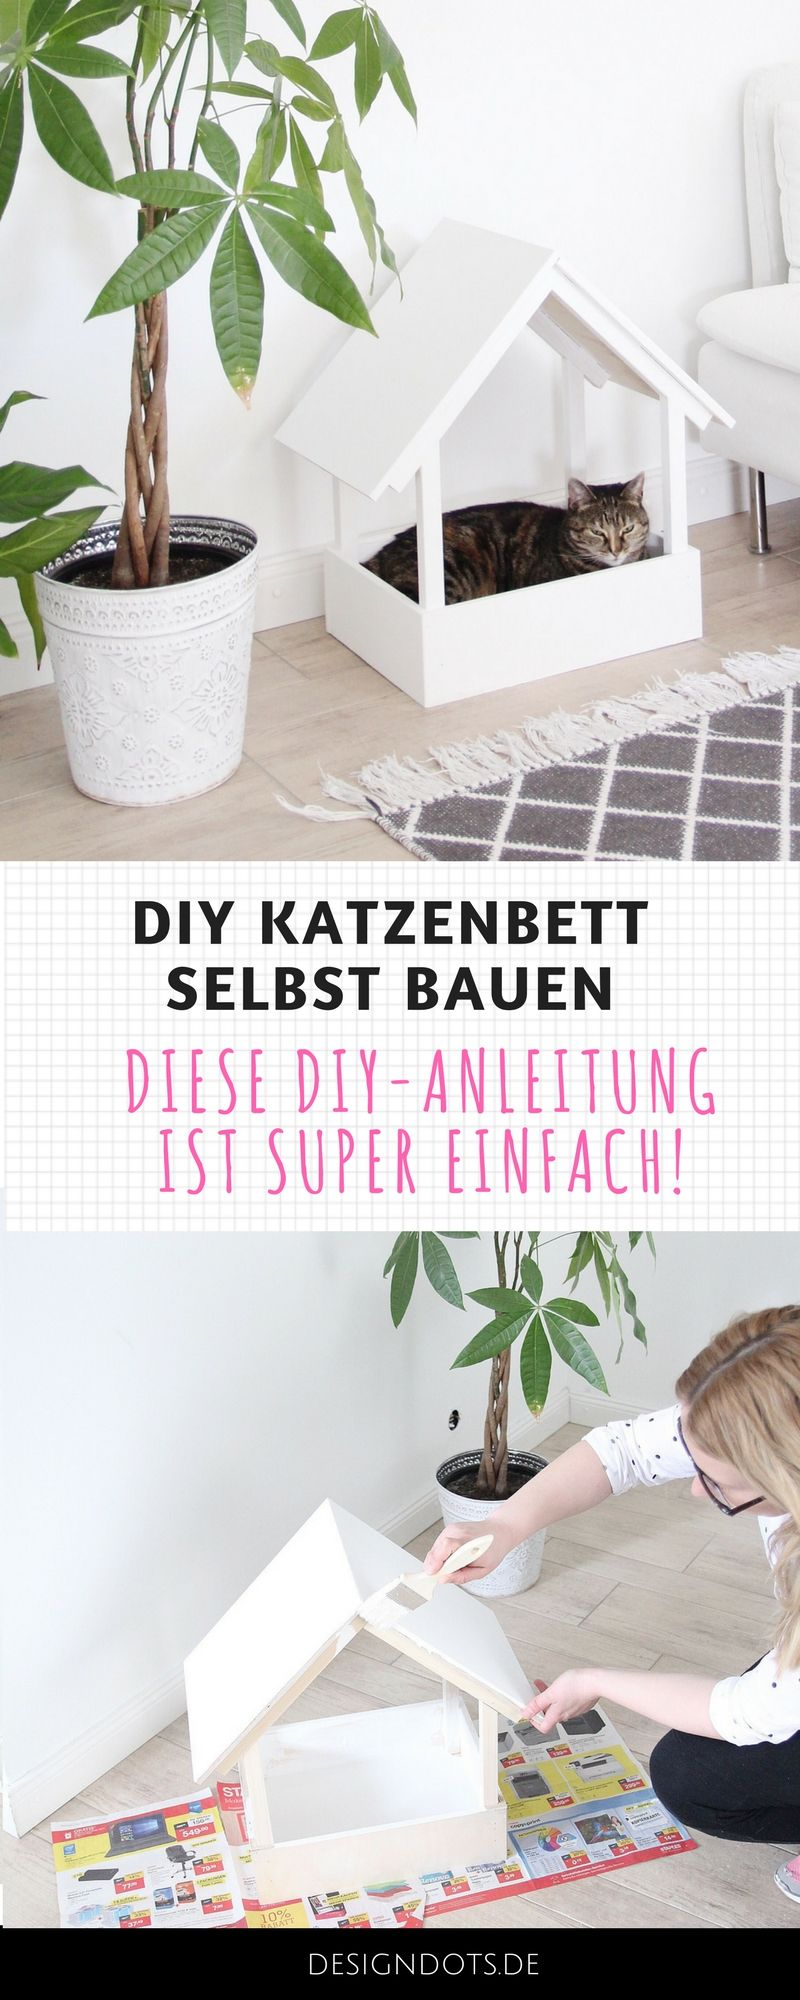 diy stillvolles katzenbett selbst bauen pinterest. Black Bedroom Furniture Sets. Home Design Ideas